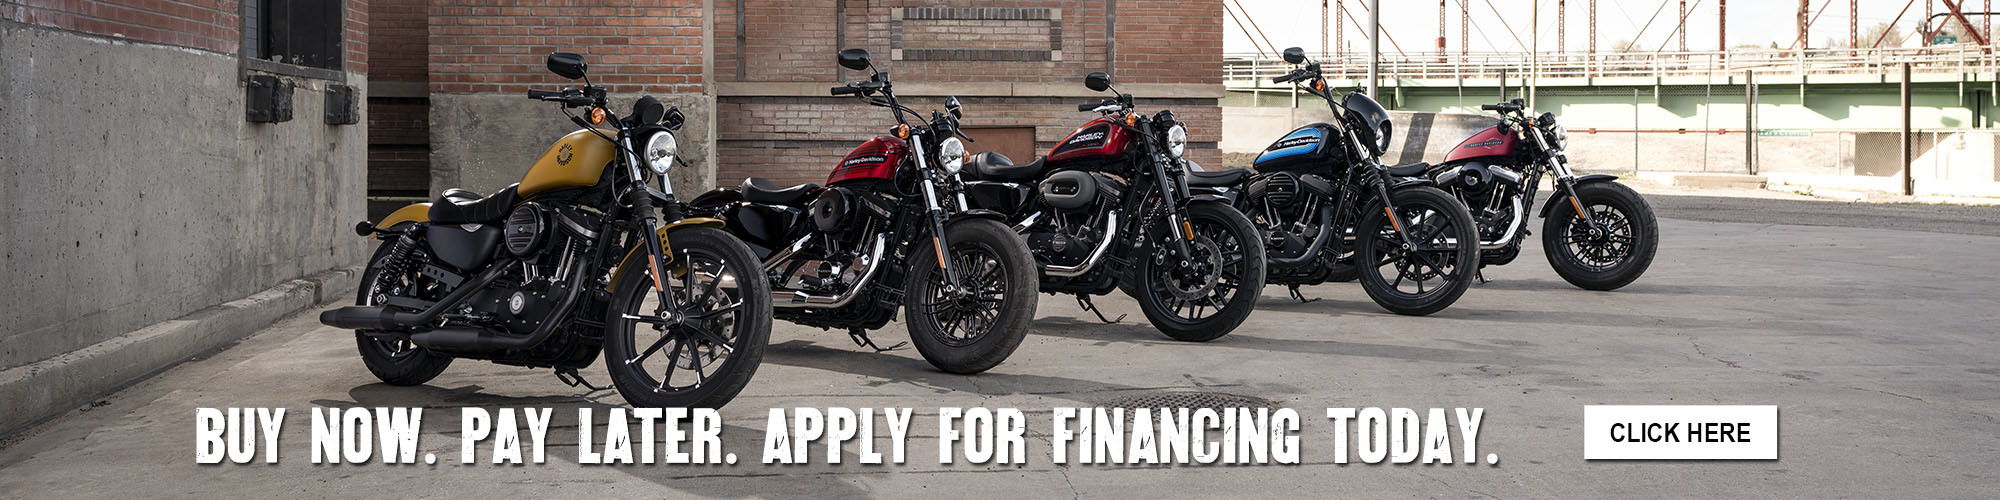 Apply for Financing today at Roughneck Harley-Davidson